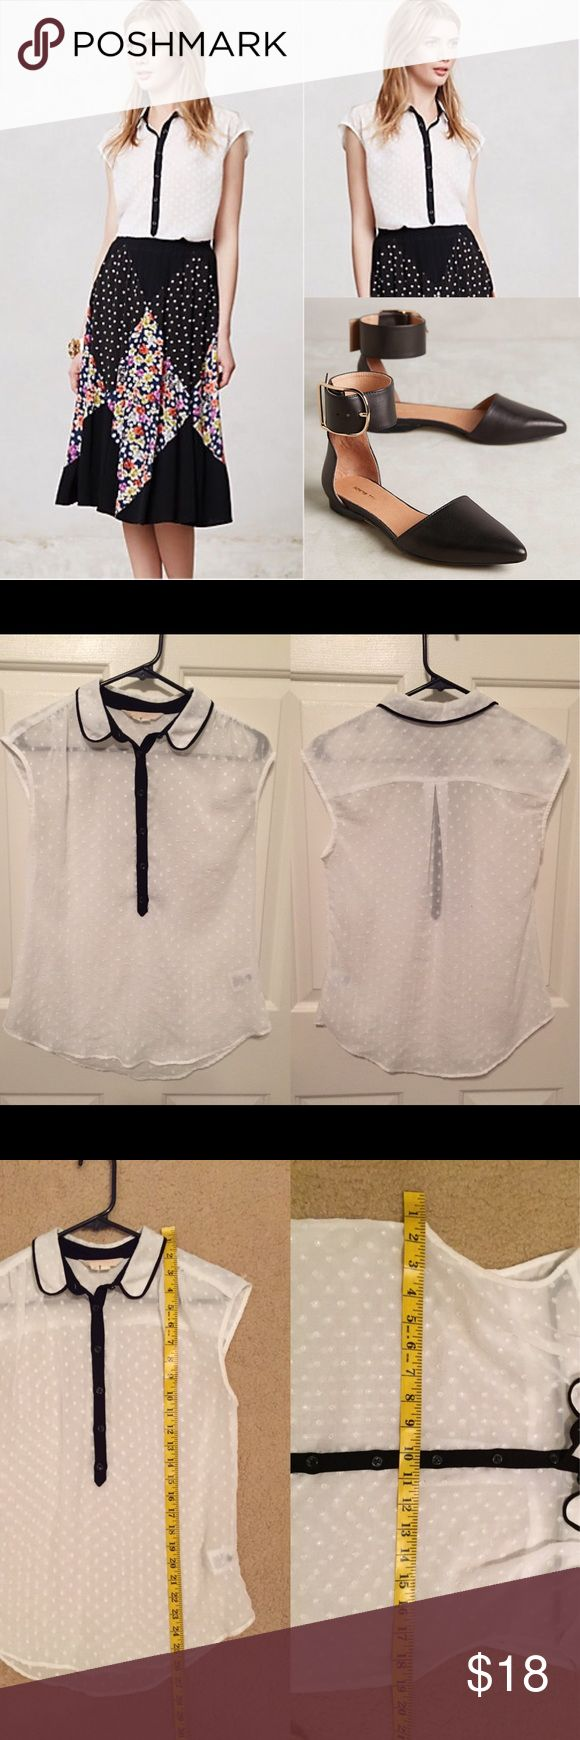 ☕️Anthropologie Swiss dot blouse By edme & esyllte. Gently worn. No known flaws. ❌trades or off-site transactions.I offer a variety of sizes in my closet therefore I do NOT model items.•I will counteroffer with the best value I can offer•I have 2 littles &🚑 an illness that sometimes requires serious medical attention and alot of hospital visits.📬Sometimes shipping takes a little longer because of my illness but usually I get it out within 2 days.Thank you for shopping my closet😘…